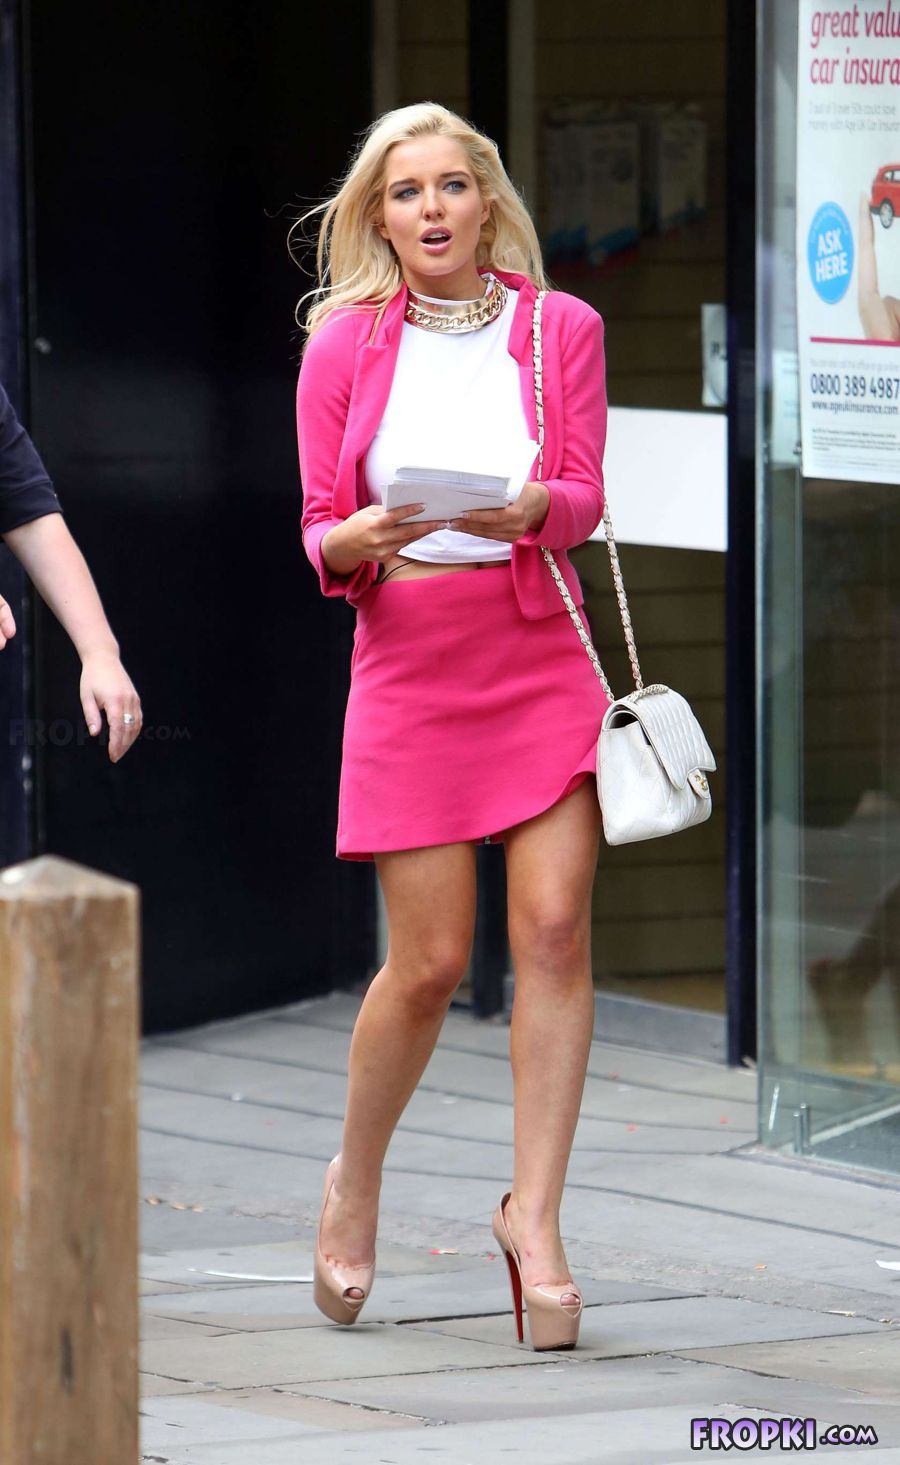 Helen Flanagan in suit on set of Celebrity Superspa AbfKRGG9